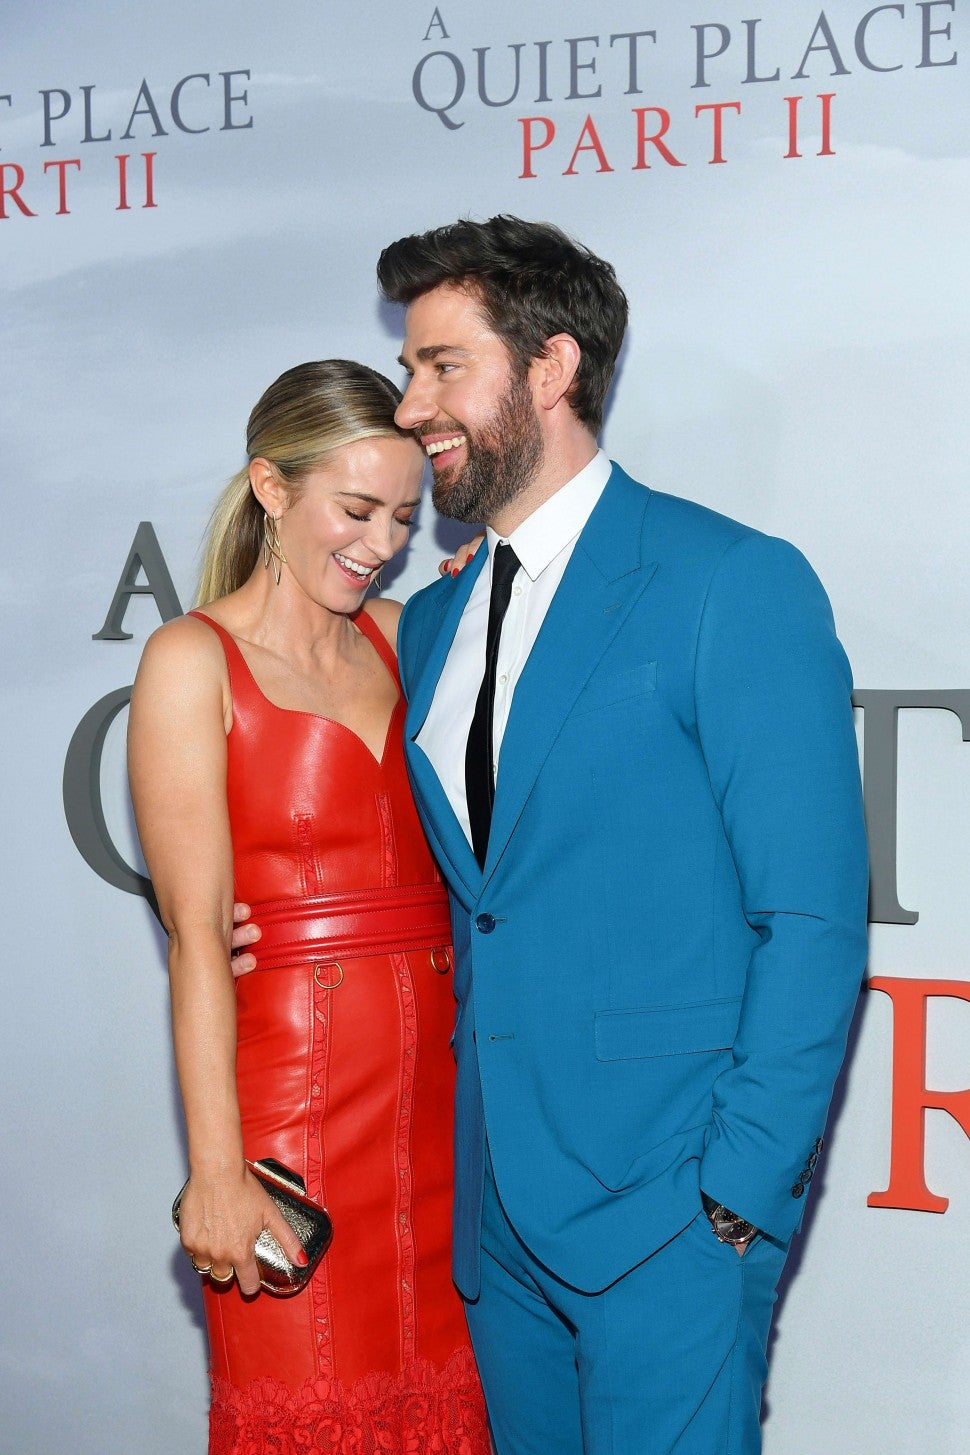 Emily Blunt and John Krasinski at the NYC premiere of 'A Quiet Place Part II' on March 8.